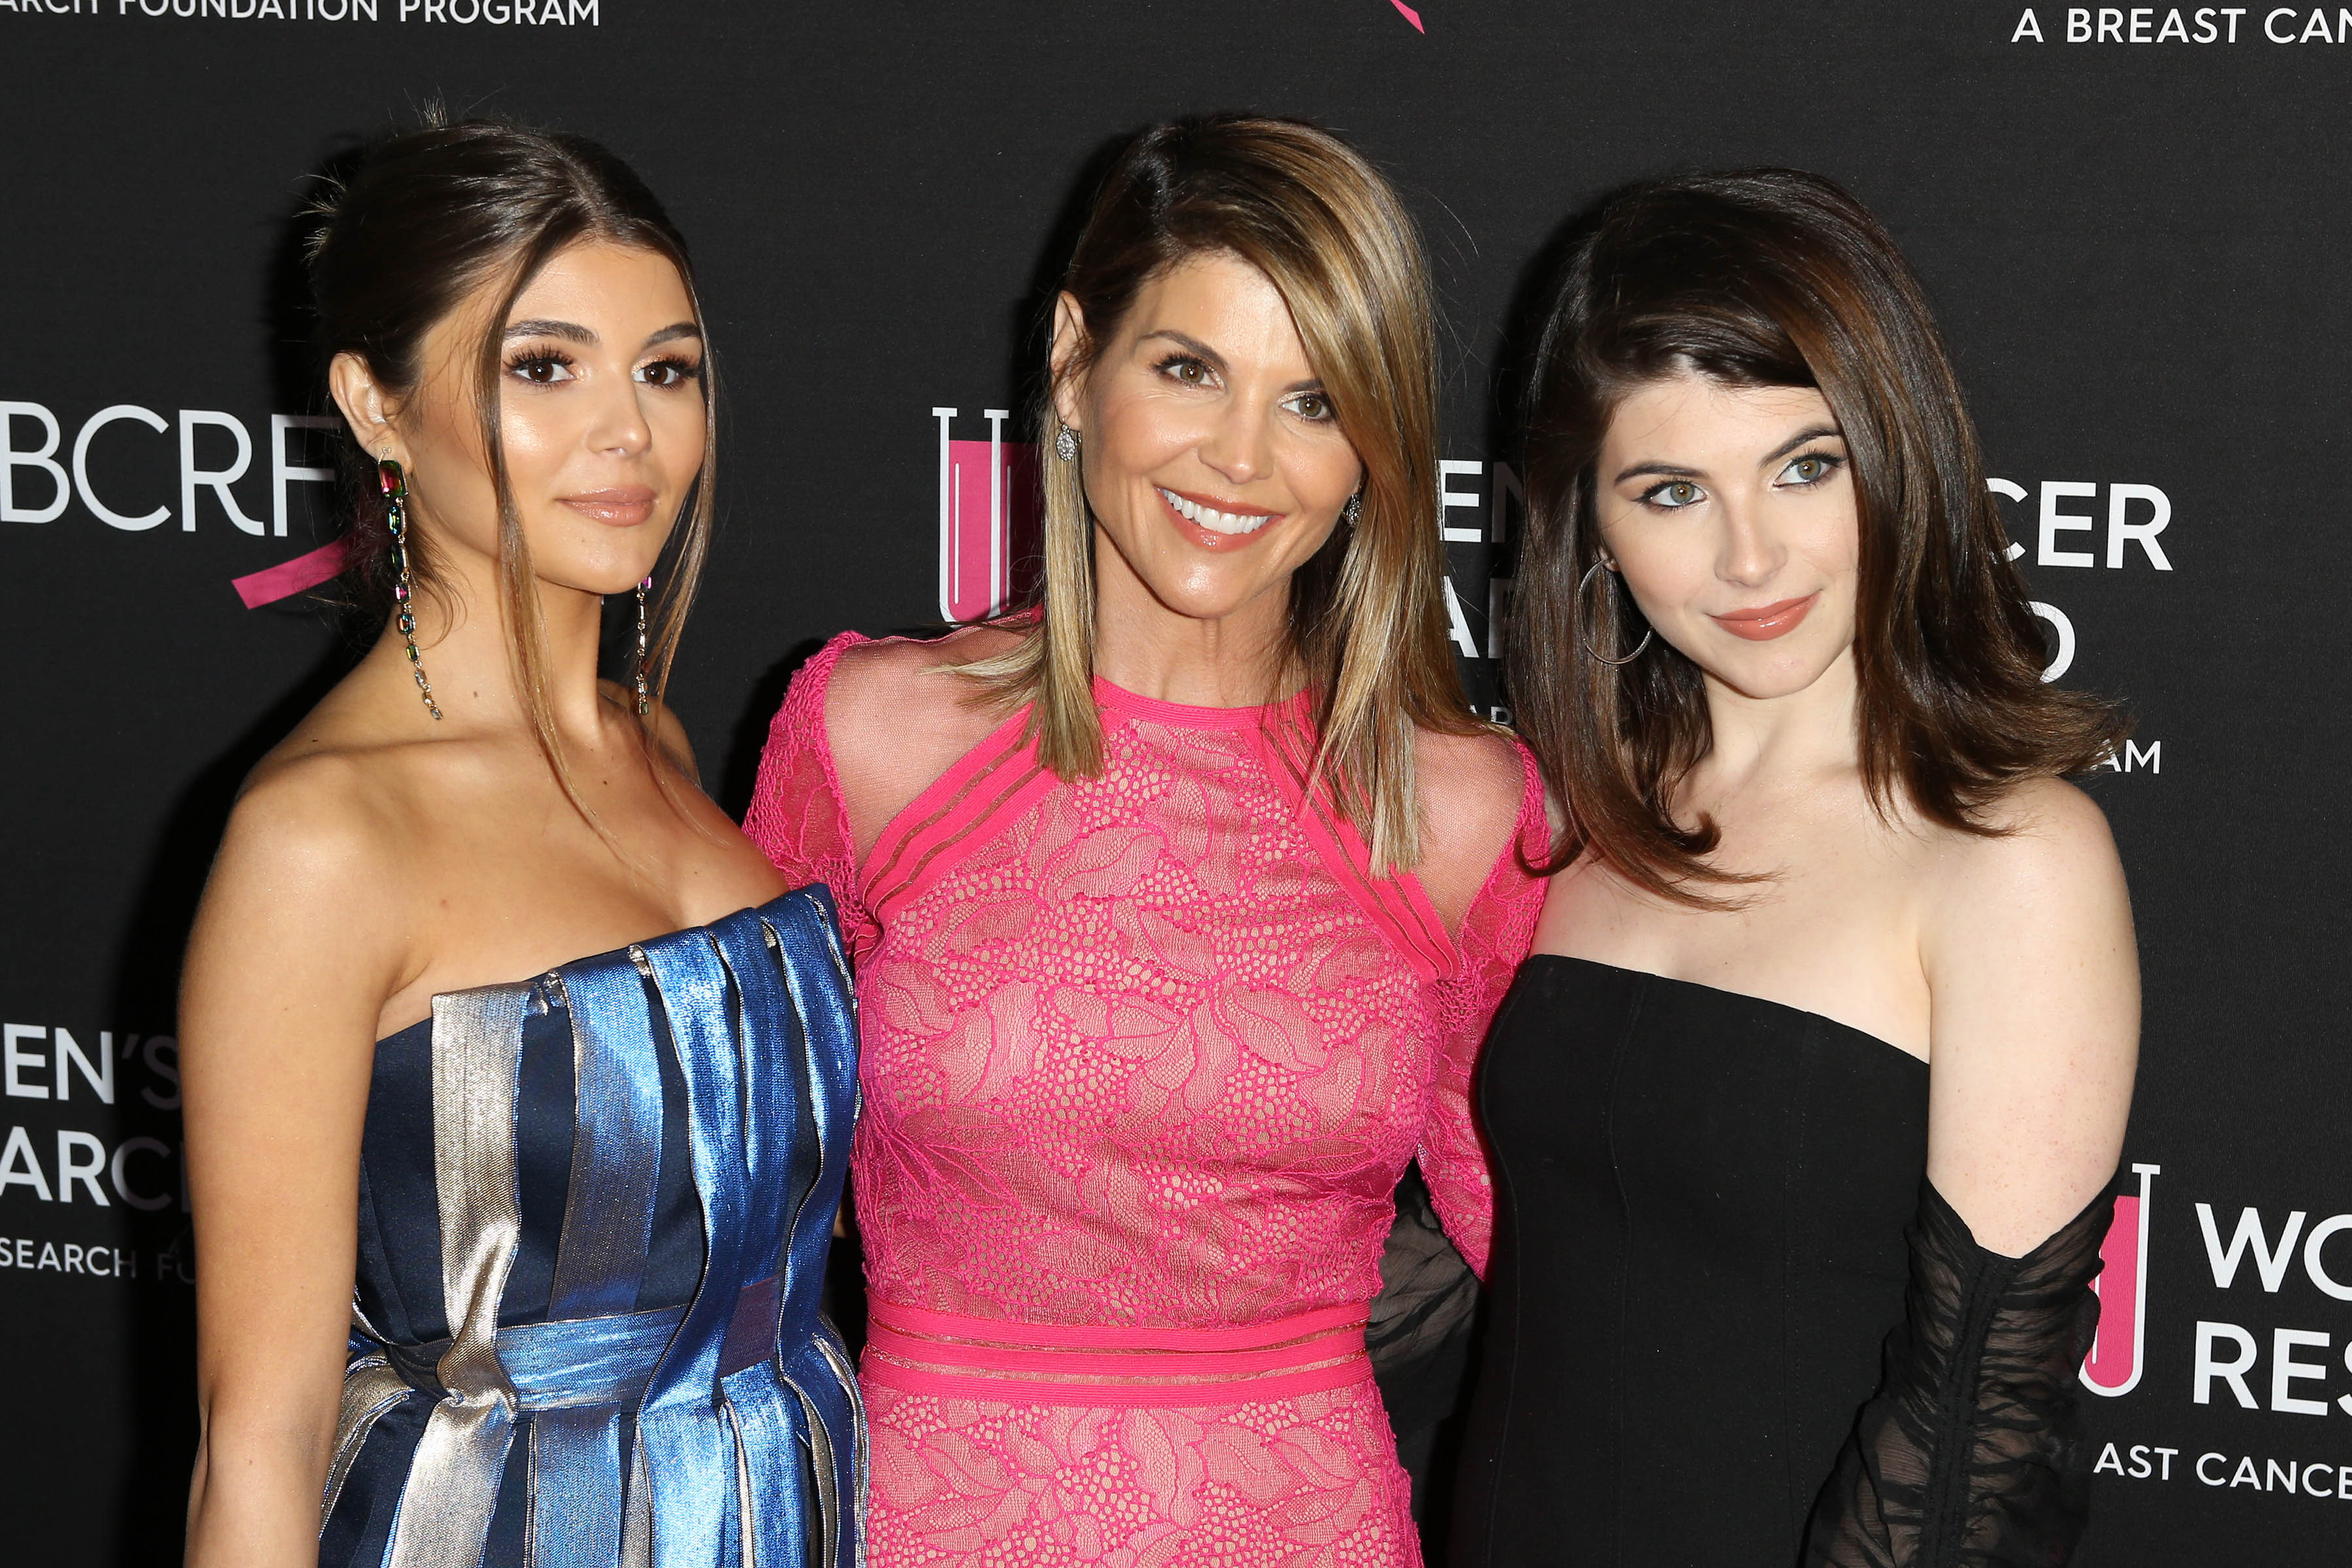 We Shouldn't Be Shocked By the Felicity Huffman and Lori Loughlin College Admissions Scandal